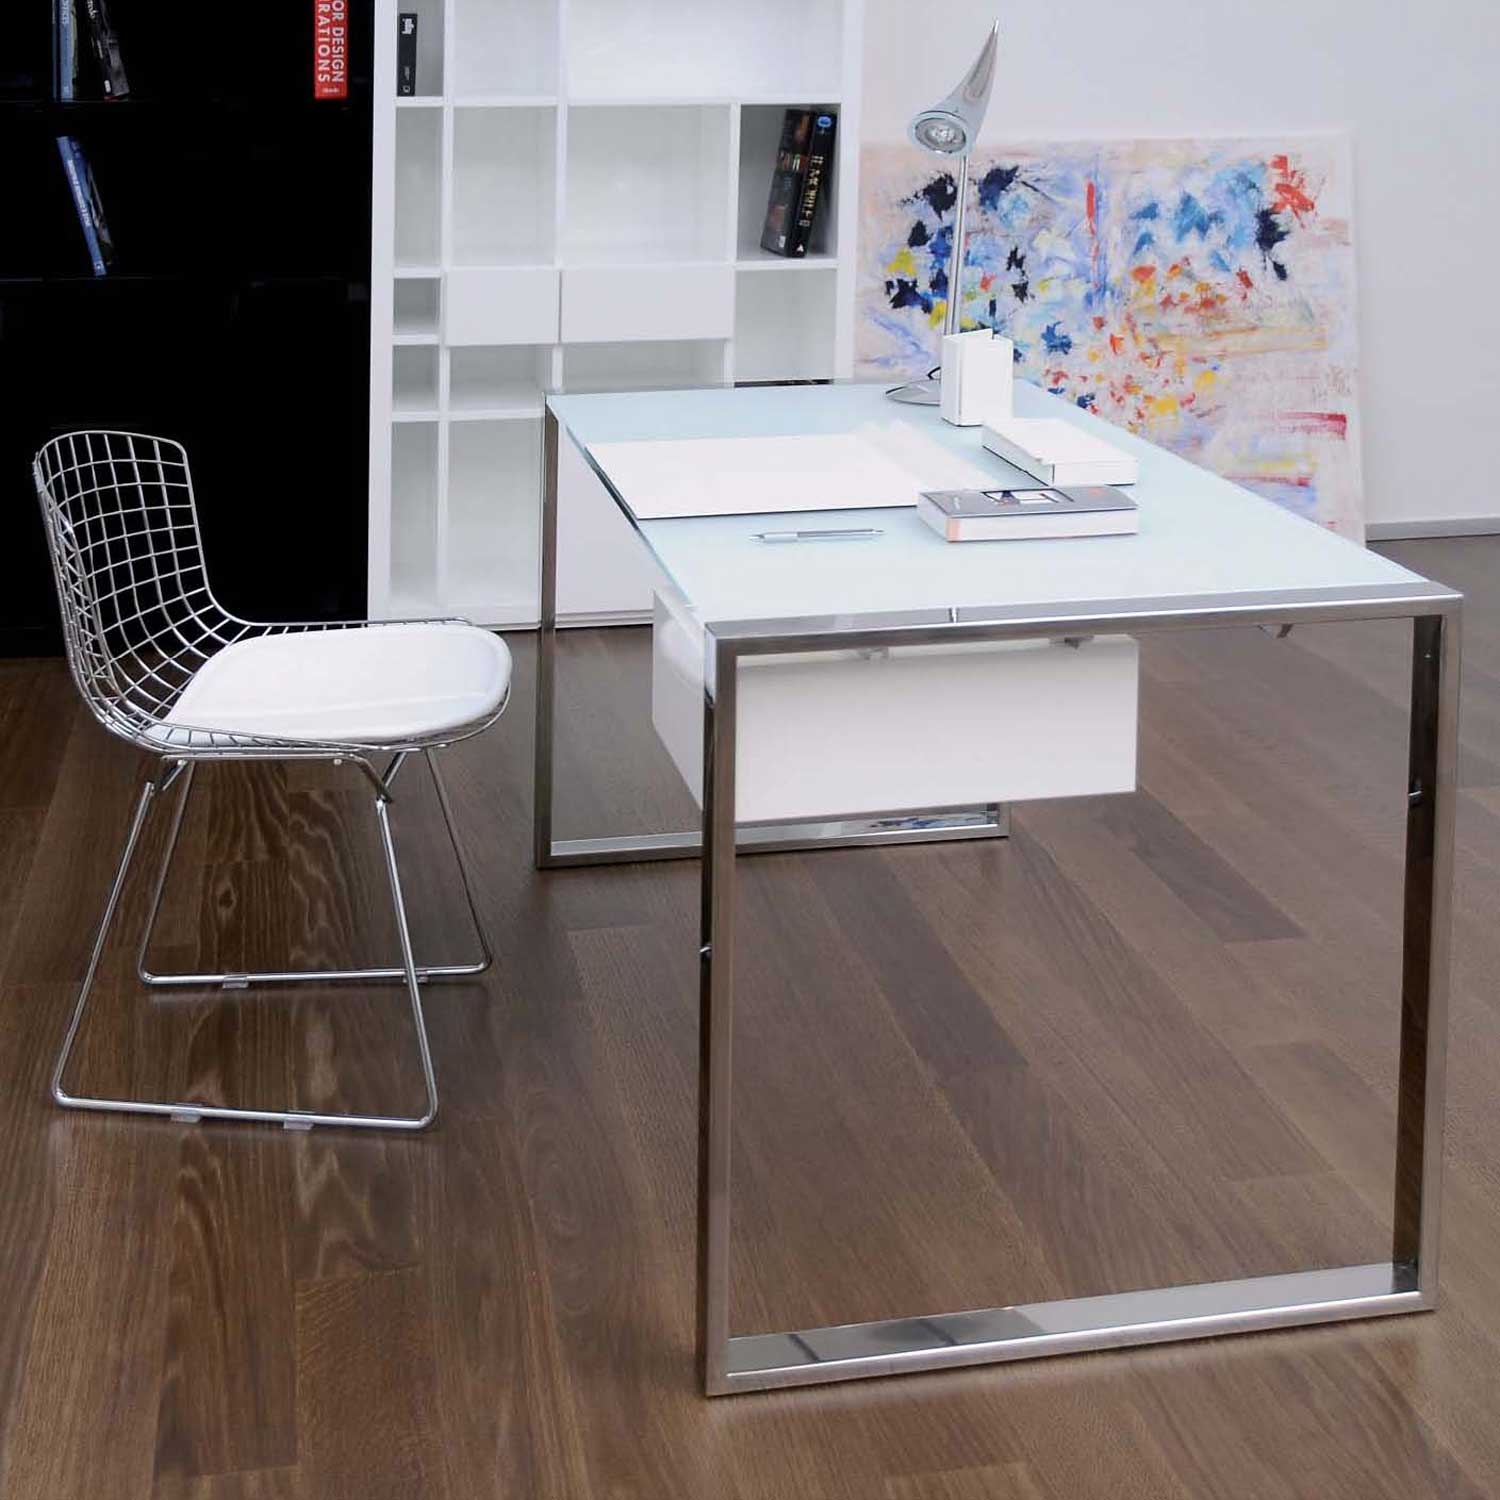 Design your home office furniture